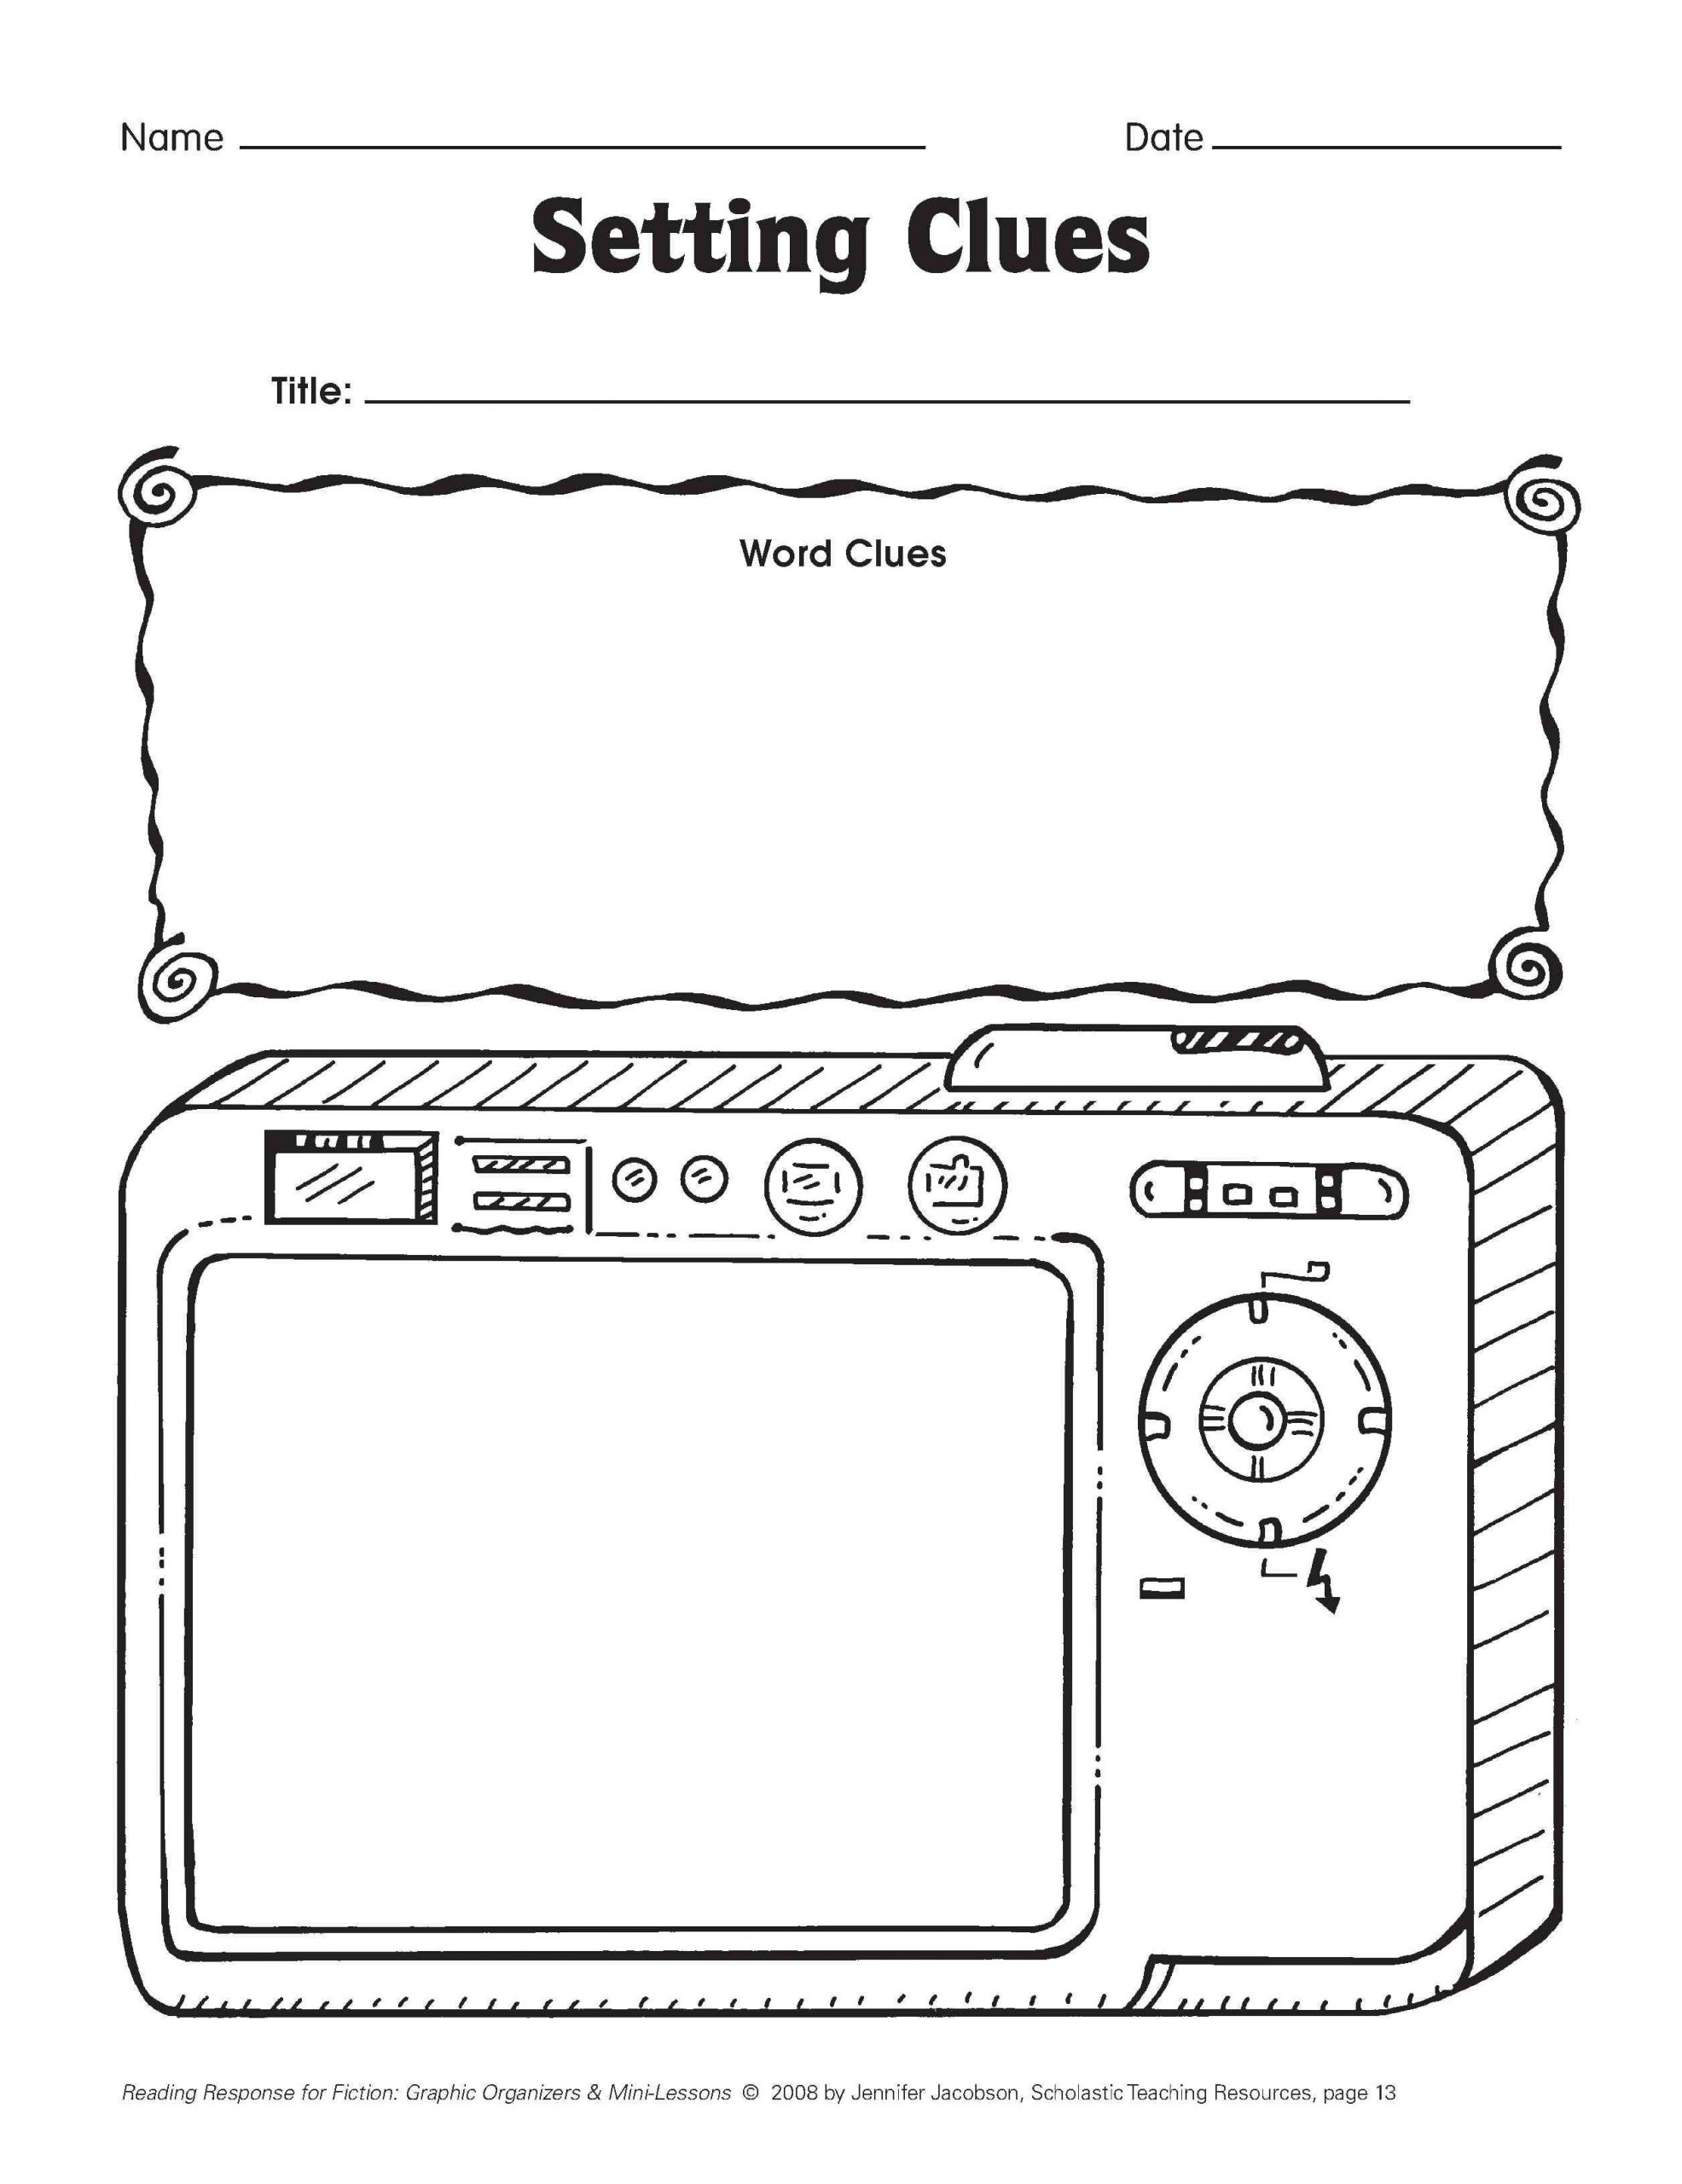 Read and Response Worksheets Reading Response Worksheets 2nd Grade